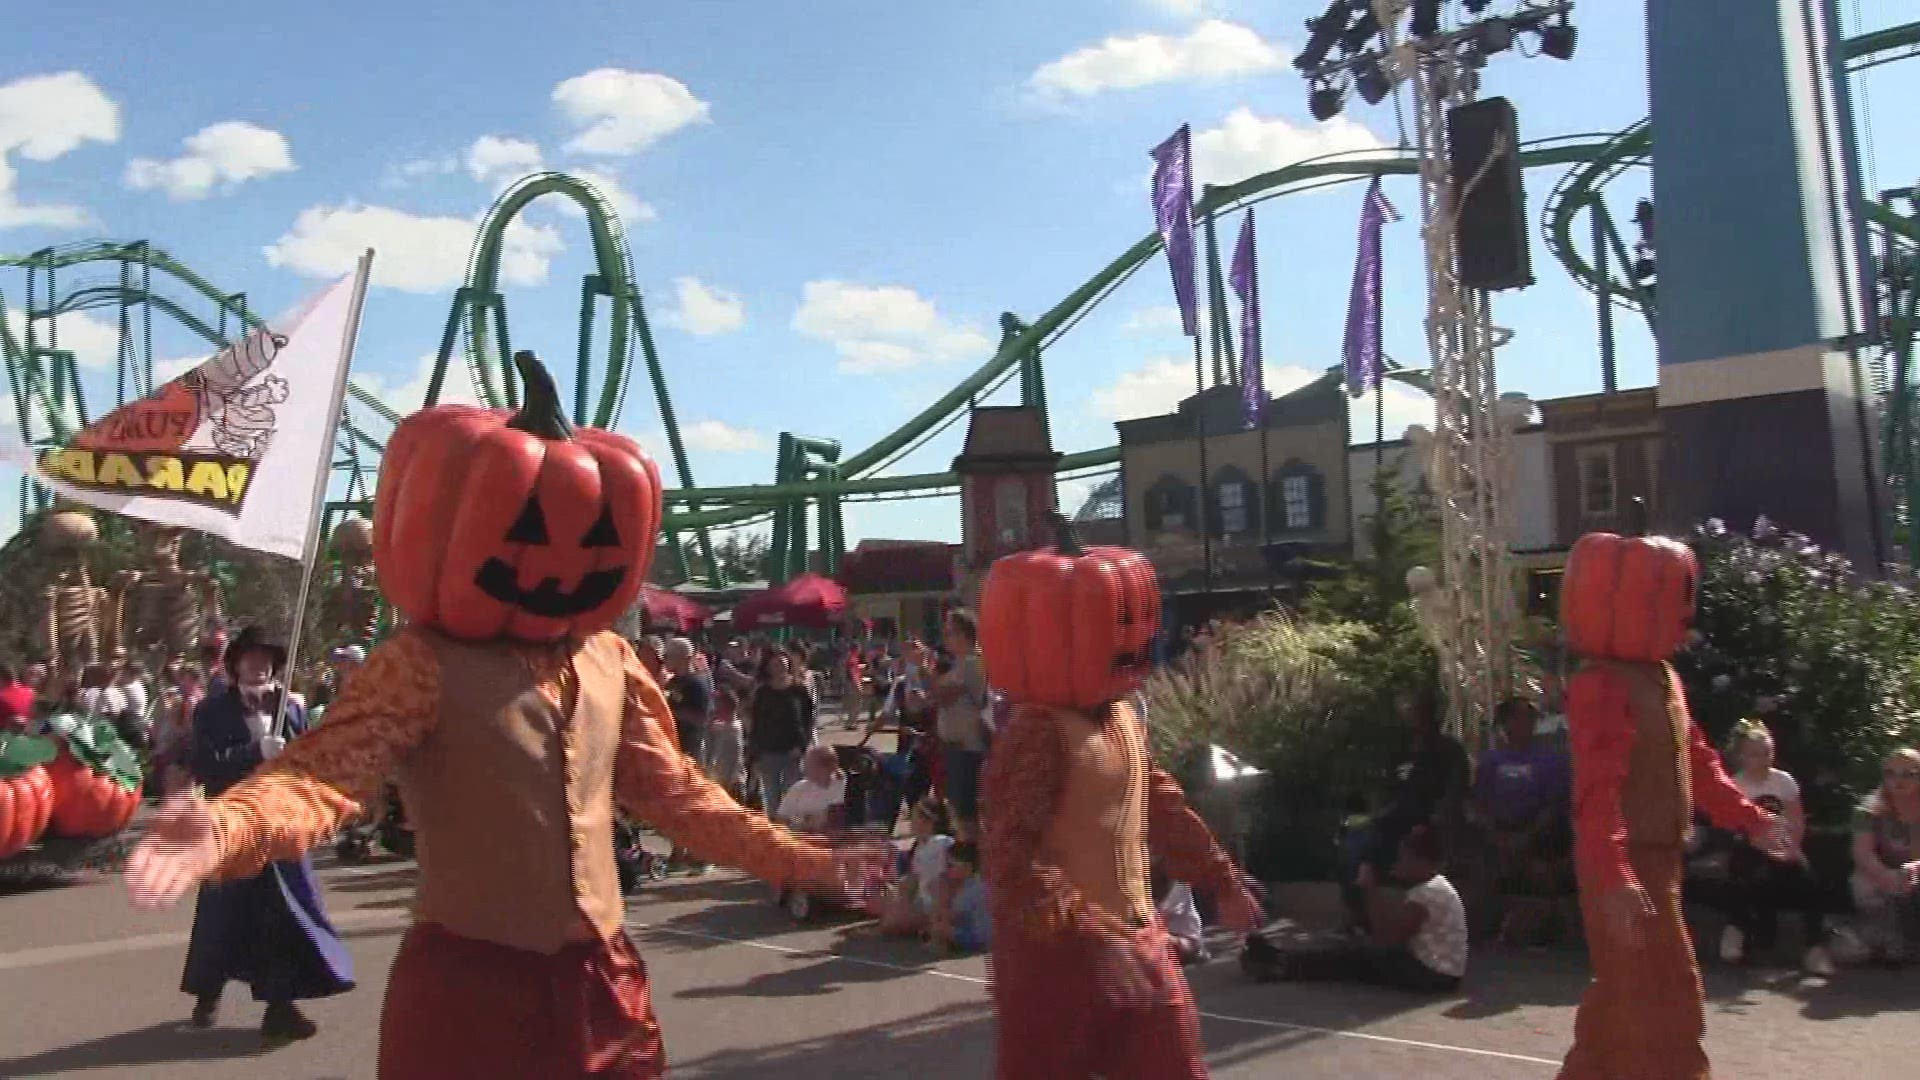 Events Halloween 2020 Tyler Texas Will Cedar Point have HalloWeekends this year? Event canceled